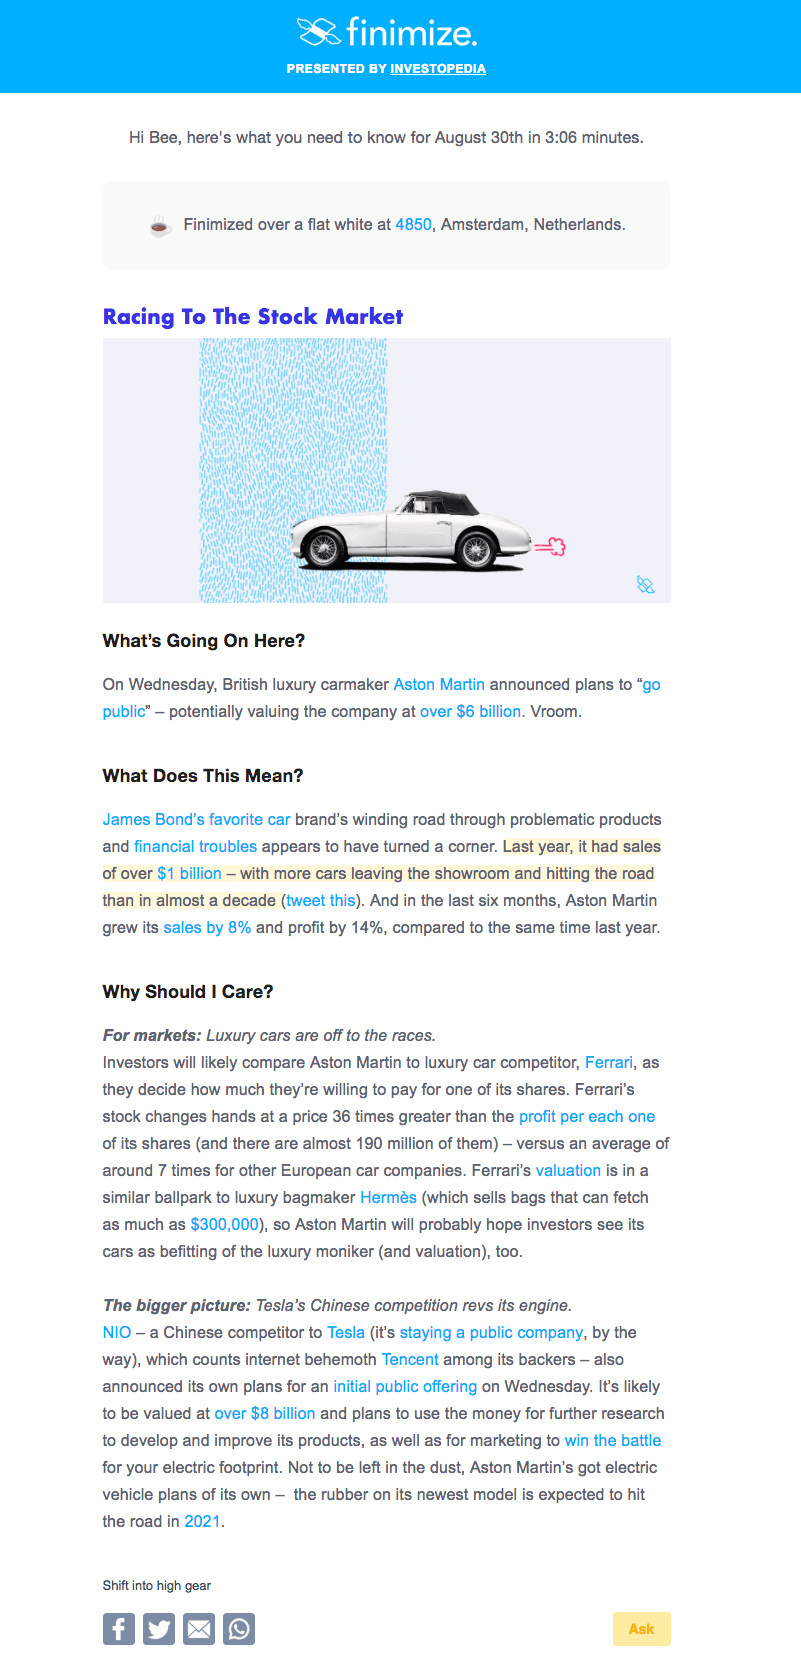 Finimize email newsletter design